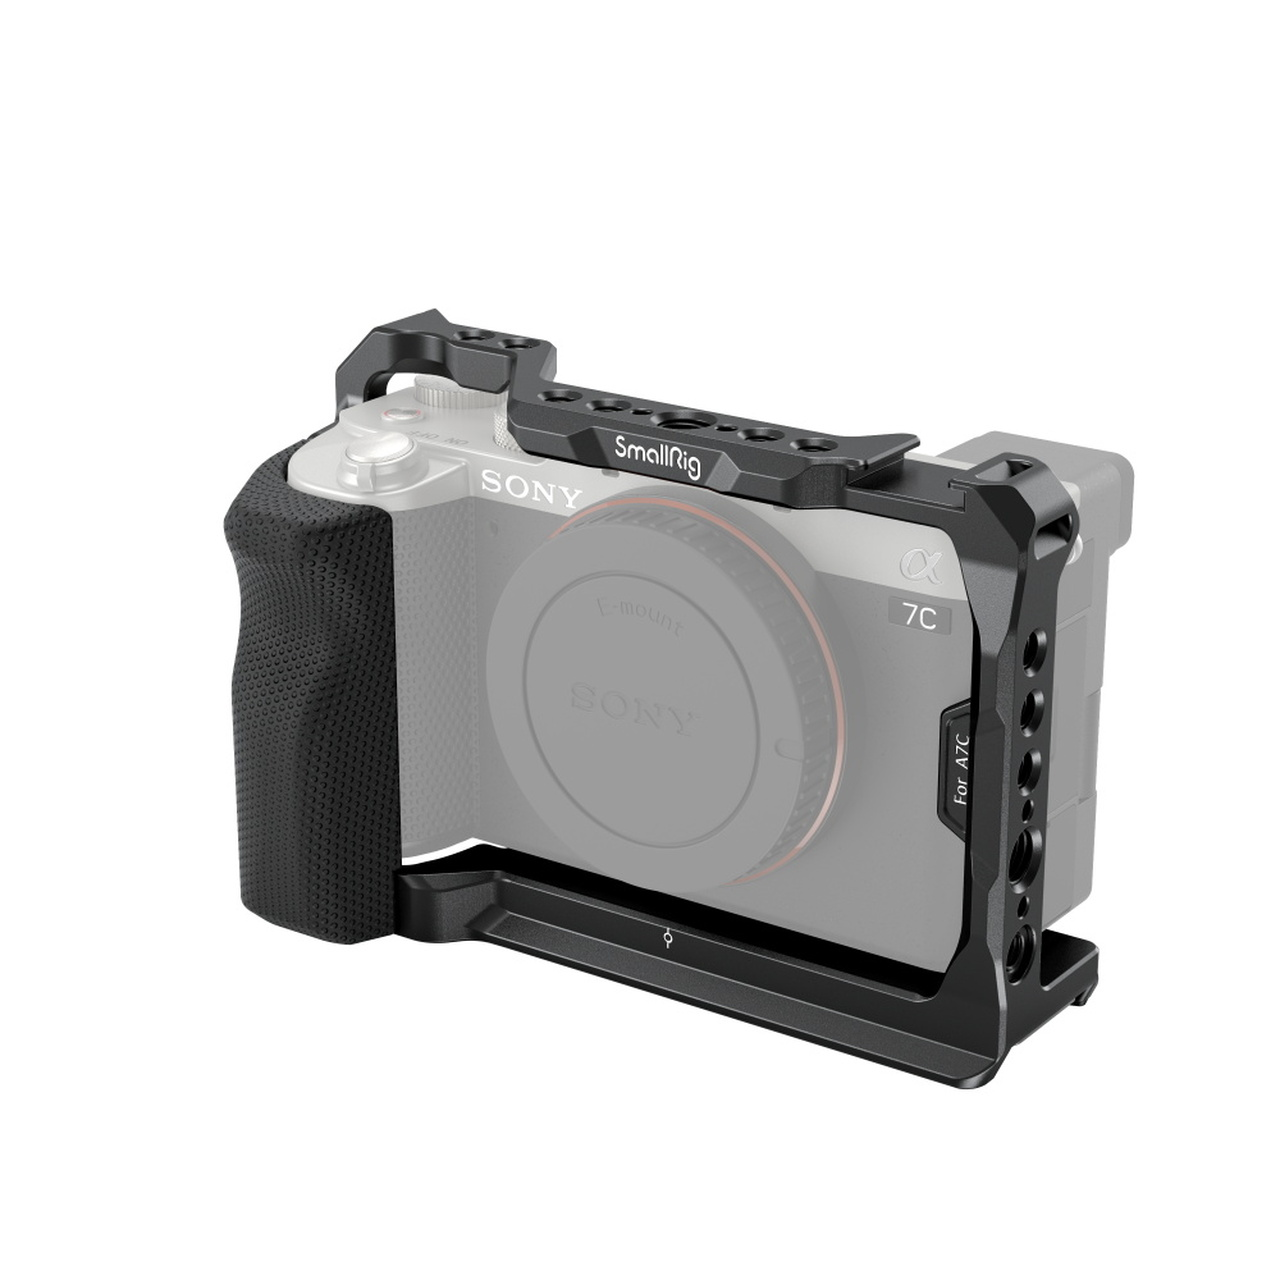 SmallRig Cage with Side Handle for Sony A7C Camera 3212